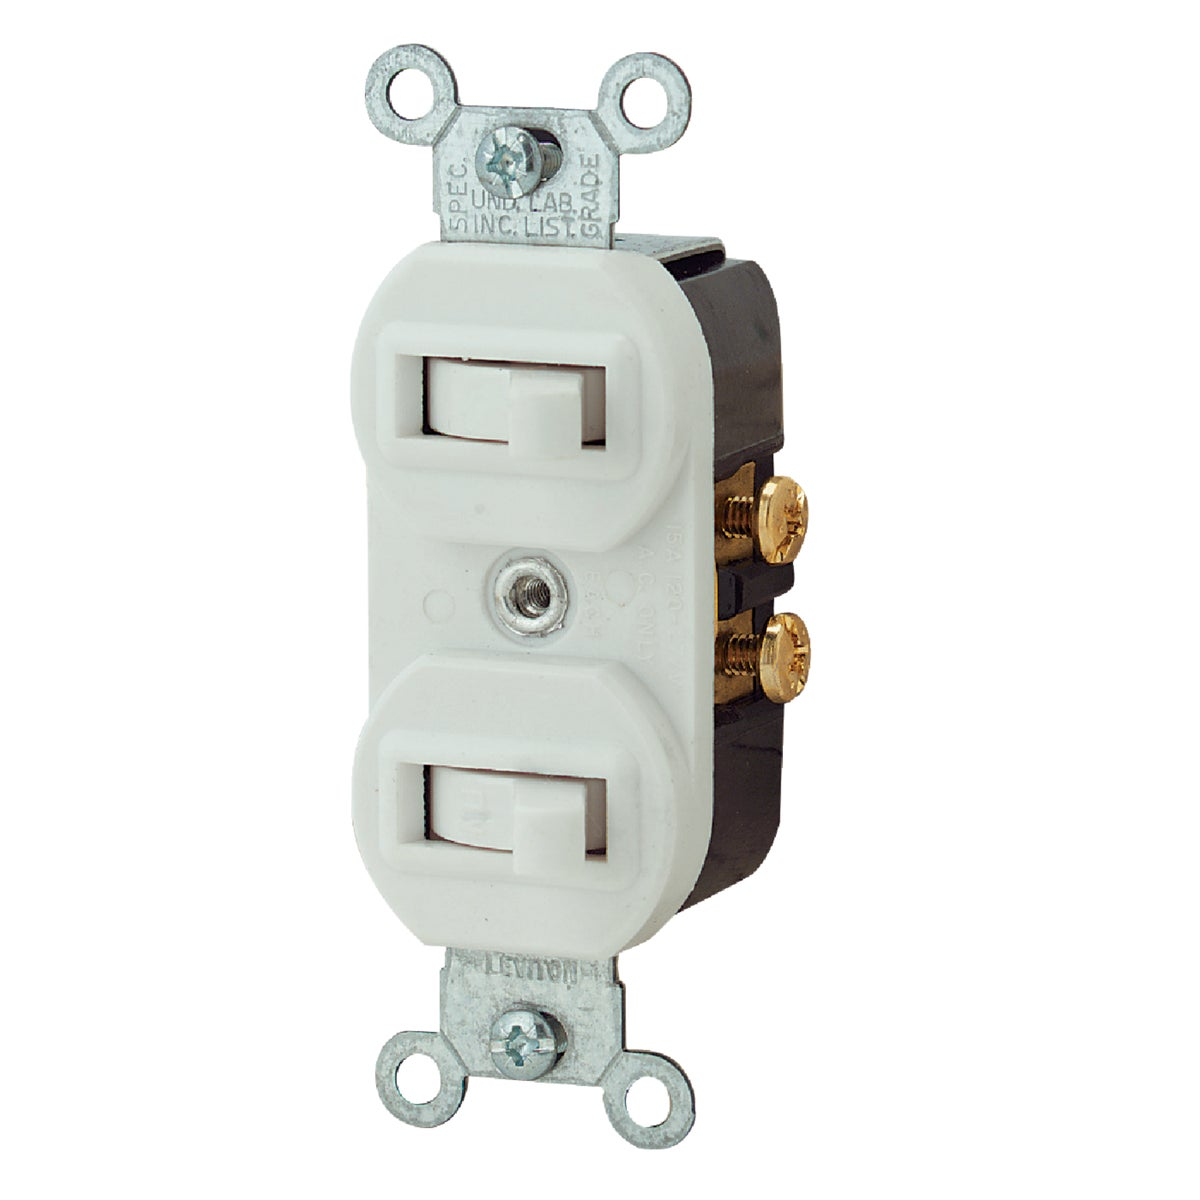 WHT 1POLE/3-WAY SWITCH - R62-5241-WS by Leviton Mfg Co